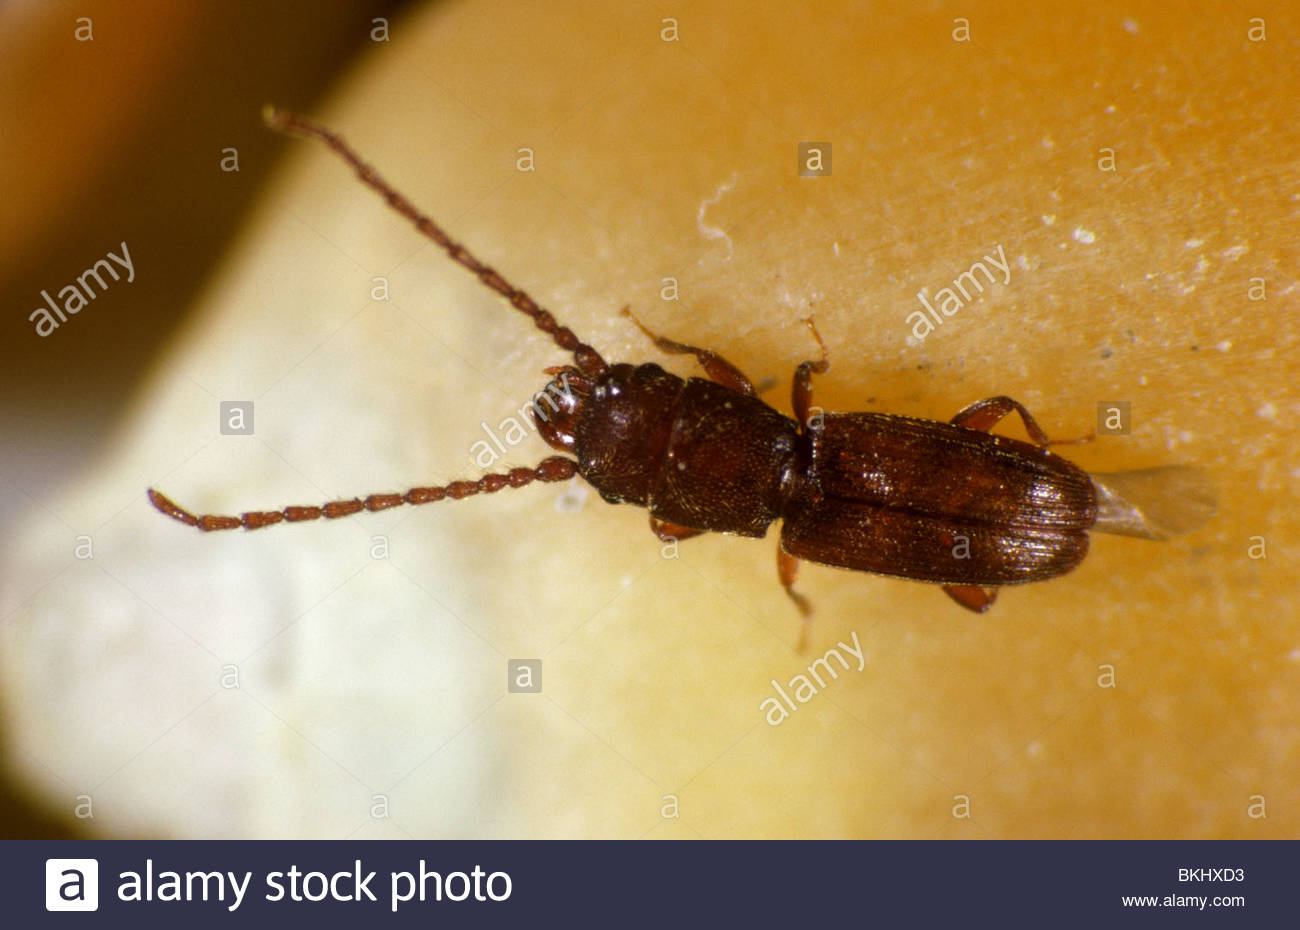 Rust red or flat grain beetle (Cryptolestes ferrugineus) on maize or corn grain - Stock Image